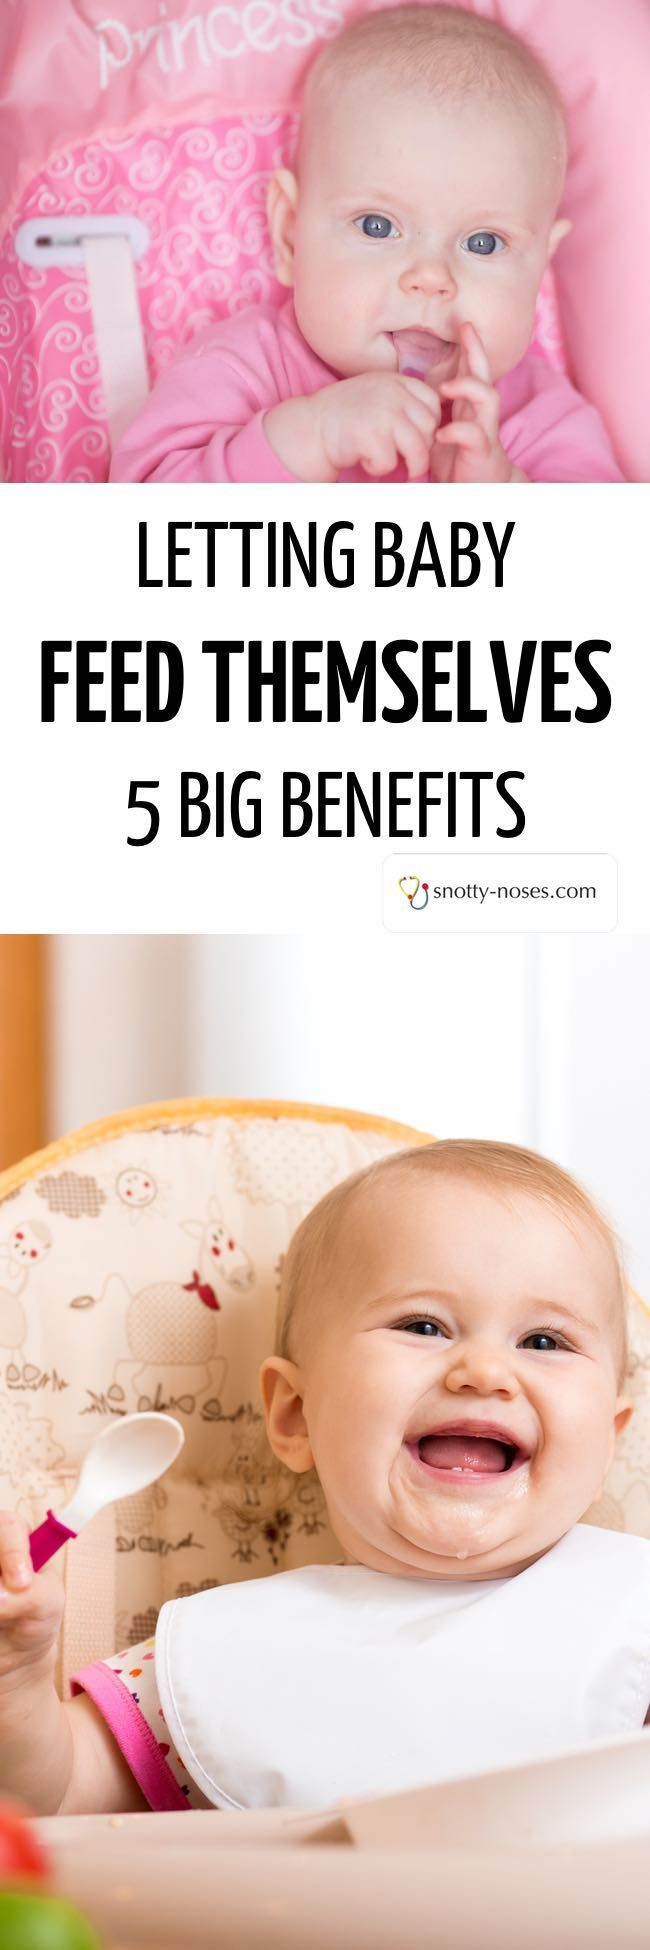 Letting Baby Feed Themselves. 5 Big Benefits of allowing your baby to take control of feeding themselves.